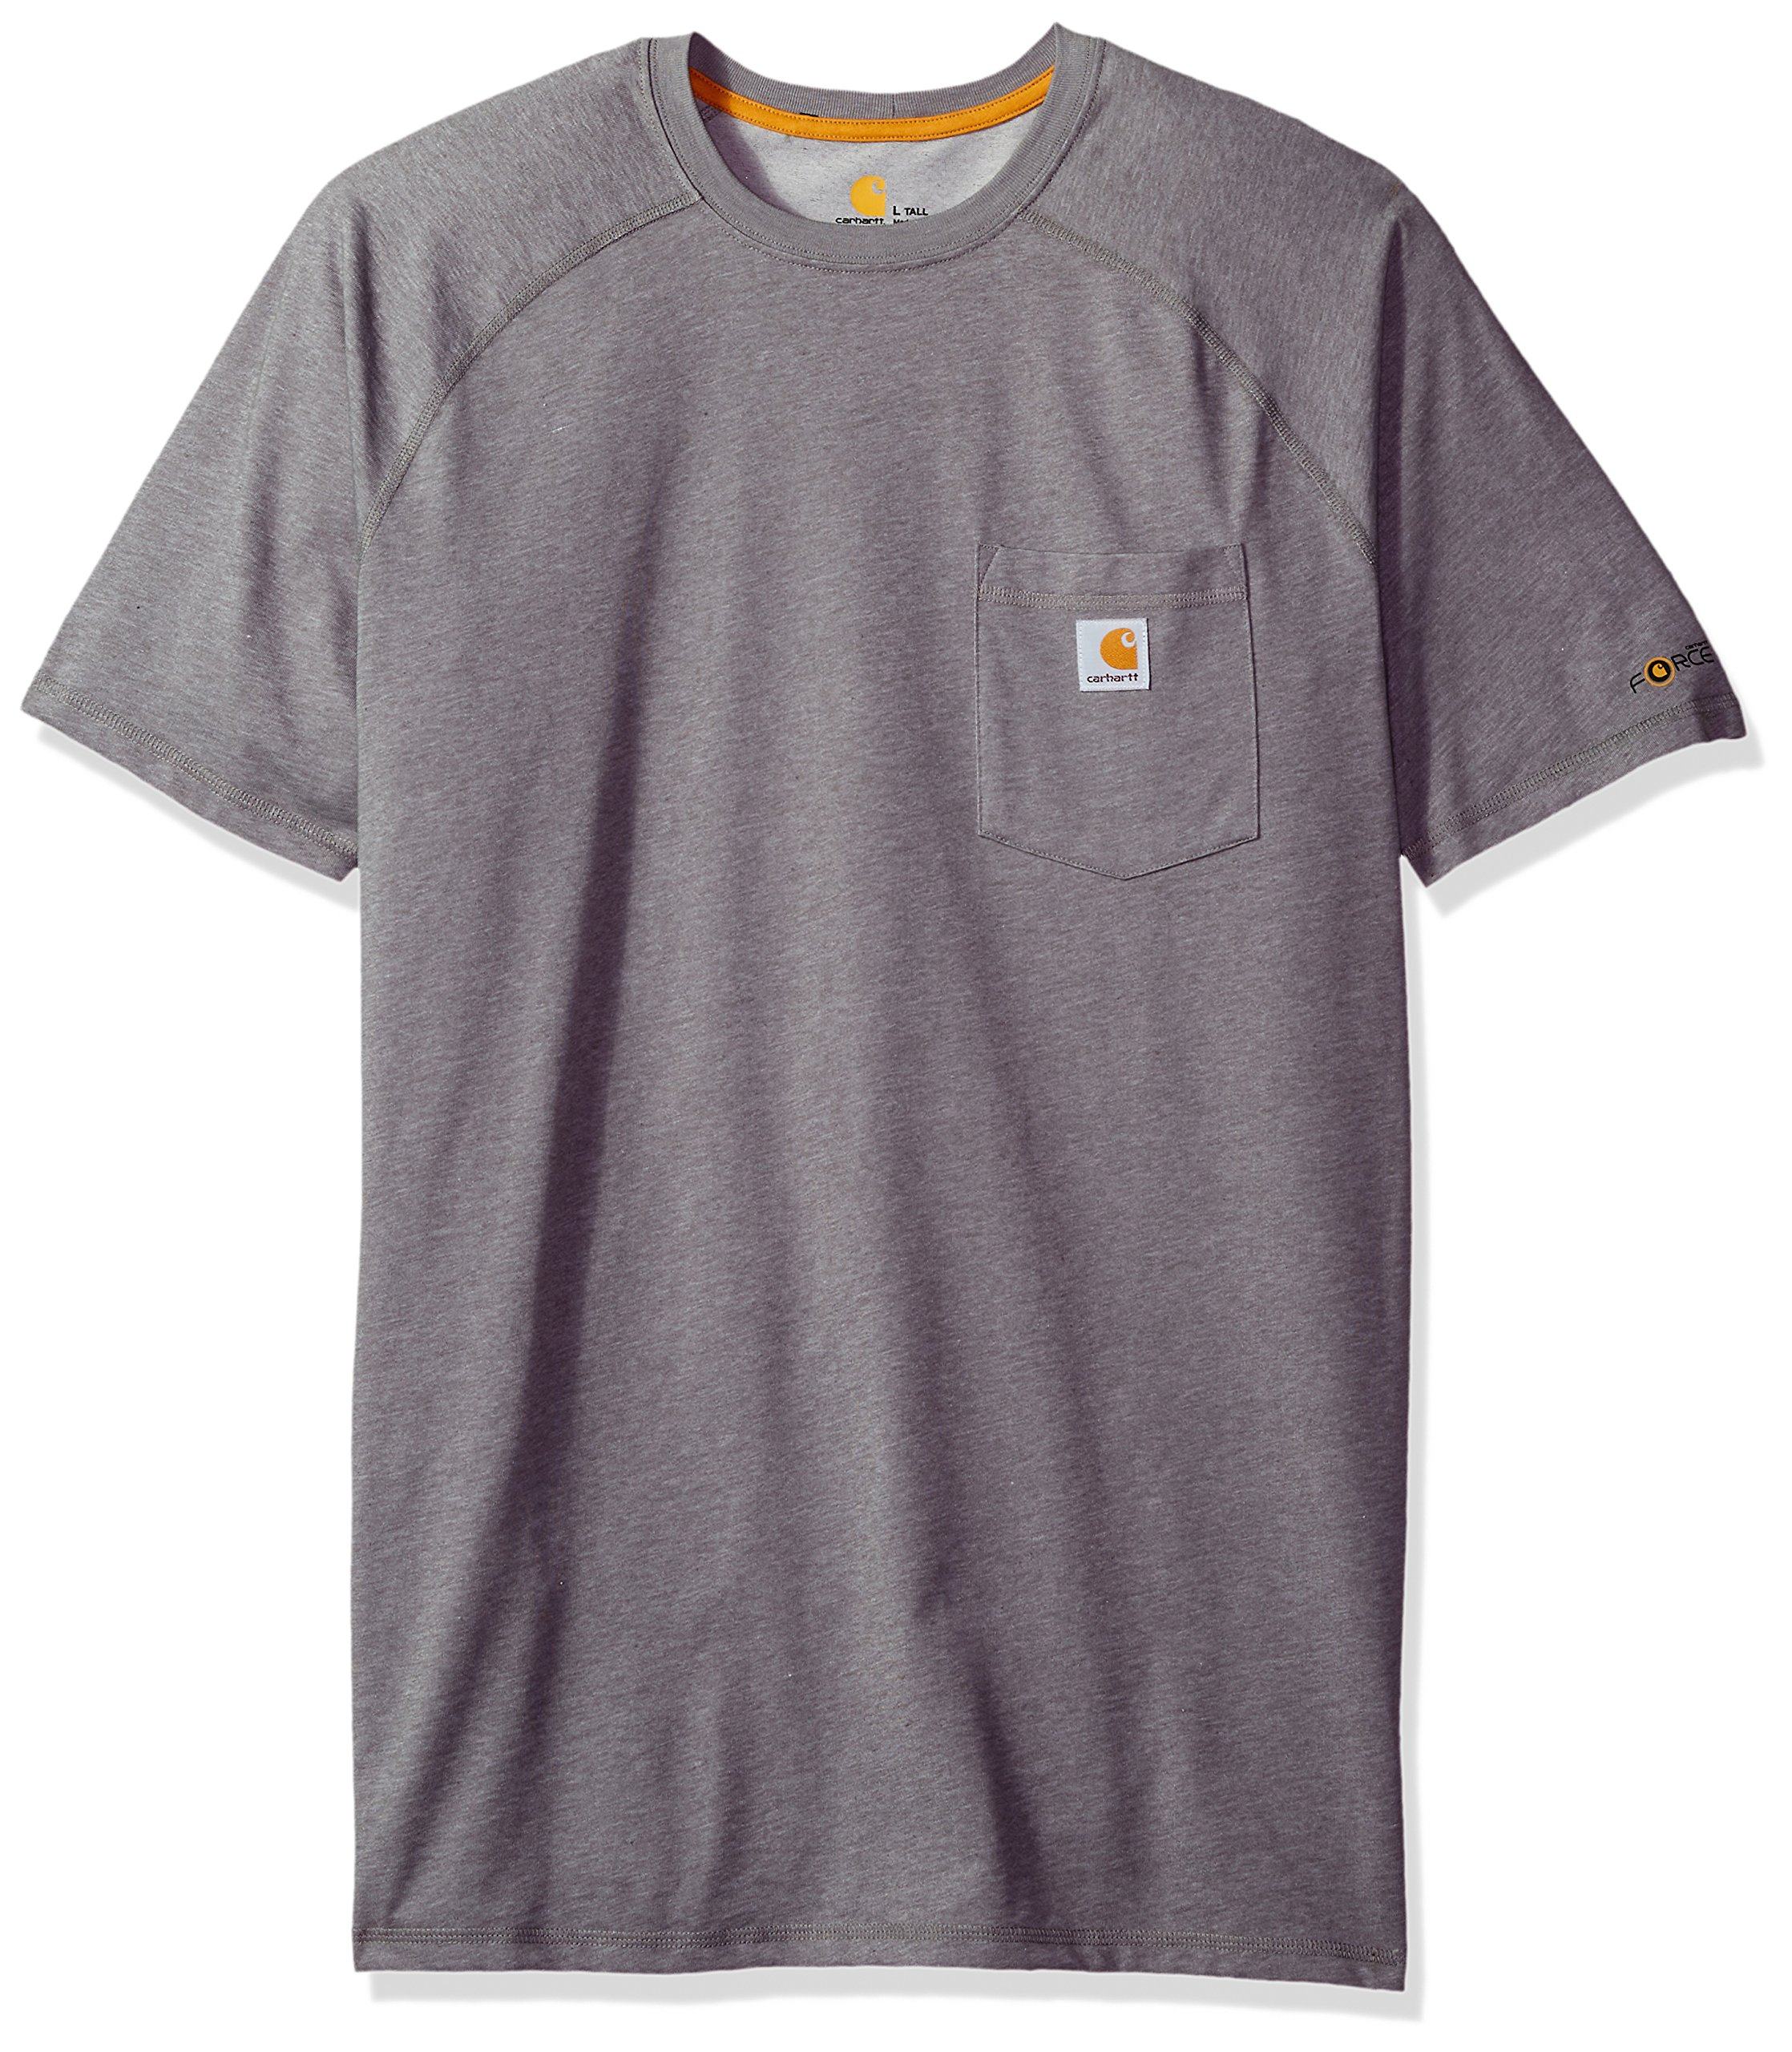 Carhartt Men's Big Force Cotton Short Sleeve T-Shirt Relaxed Fit, Granite Heather, 3X-Large/Tall